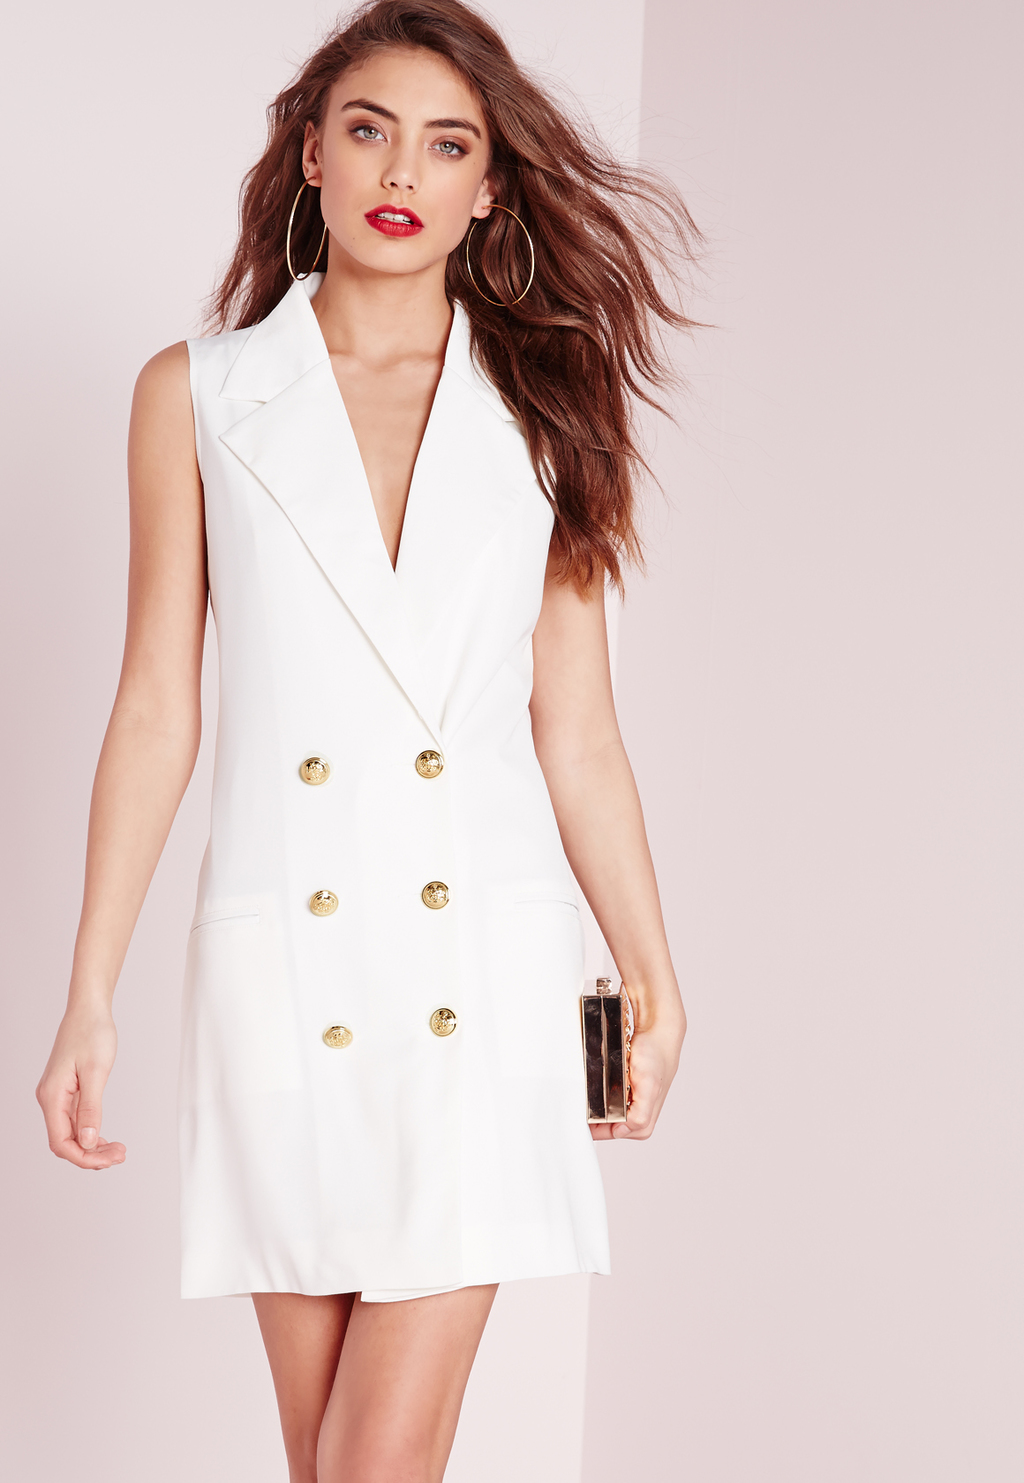 Tuxedo Wrap Dress White, White - style: shift; length: mid thigh; neckline: v-neck; fit: tailored/fitted; pattern: plain; sleeve style: sleeveless; predominant colour: white; occasions: evening; fibres: polyester/polyamide - stretch; sleeve length: sleeveless; pattern type: fabric; texture group: woven light midweight; season: s/s 2016; wardrobe: event